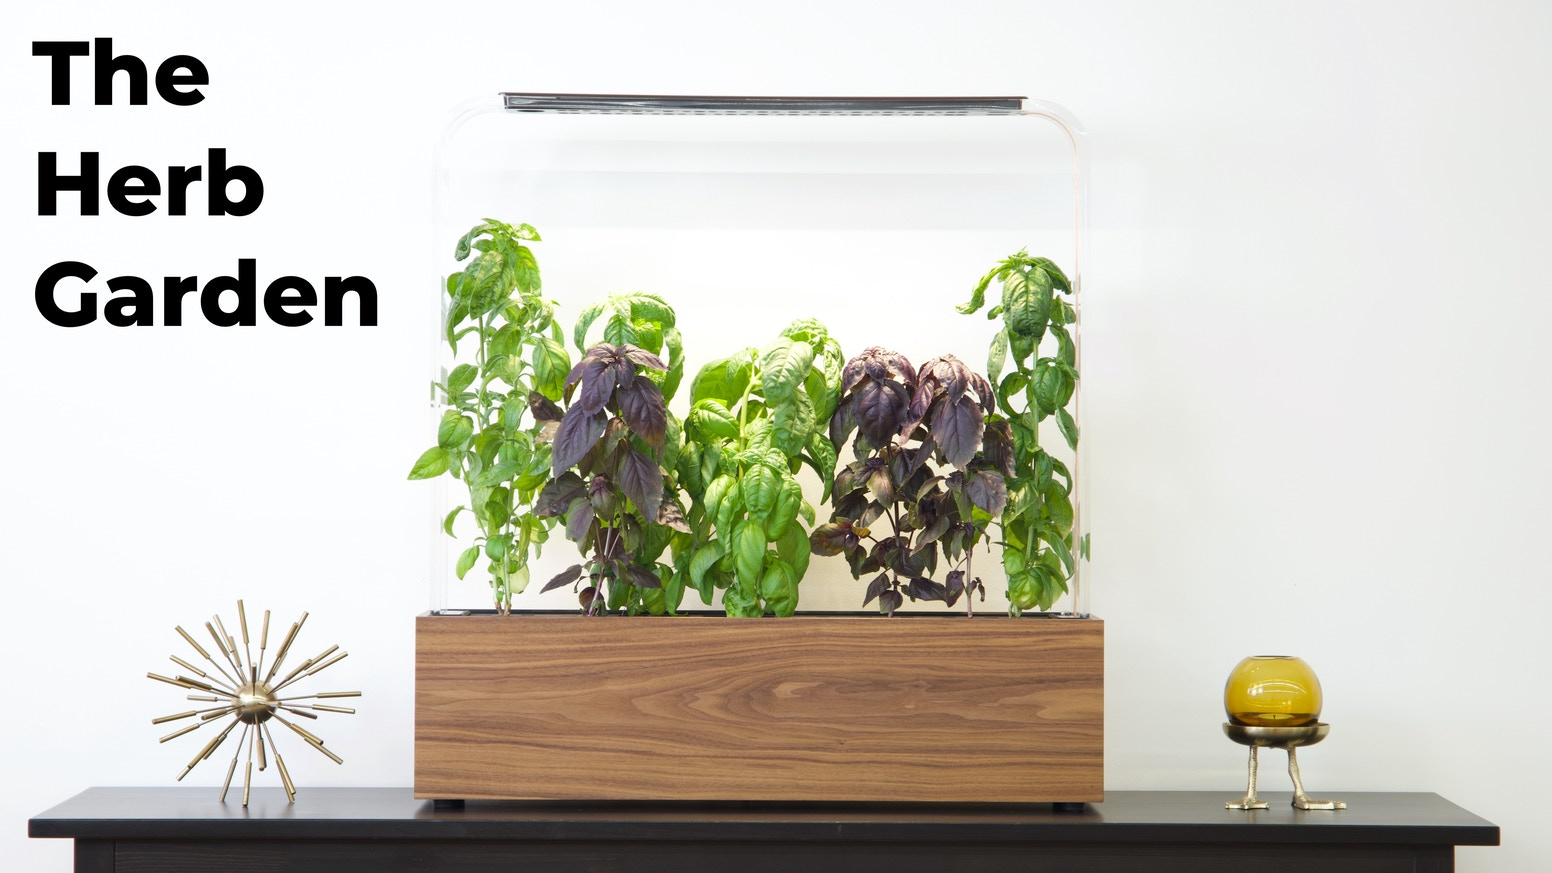 A truly intelligent, beautiful, professional-grade, indoor garden for growing fresh herbs and vegetables all year long